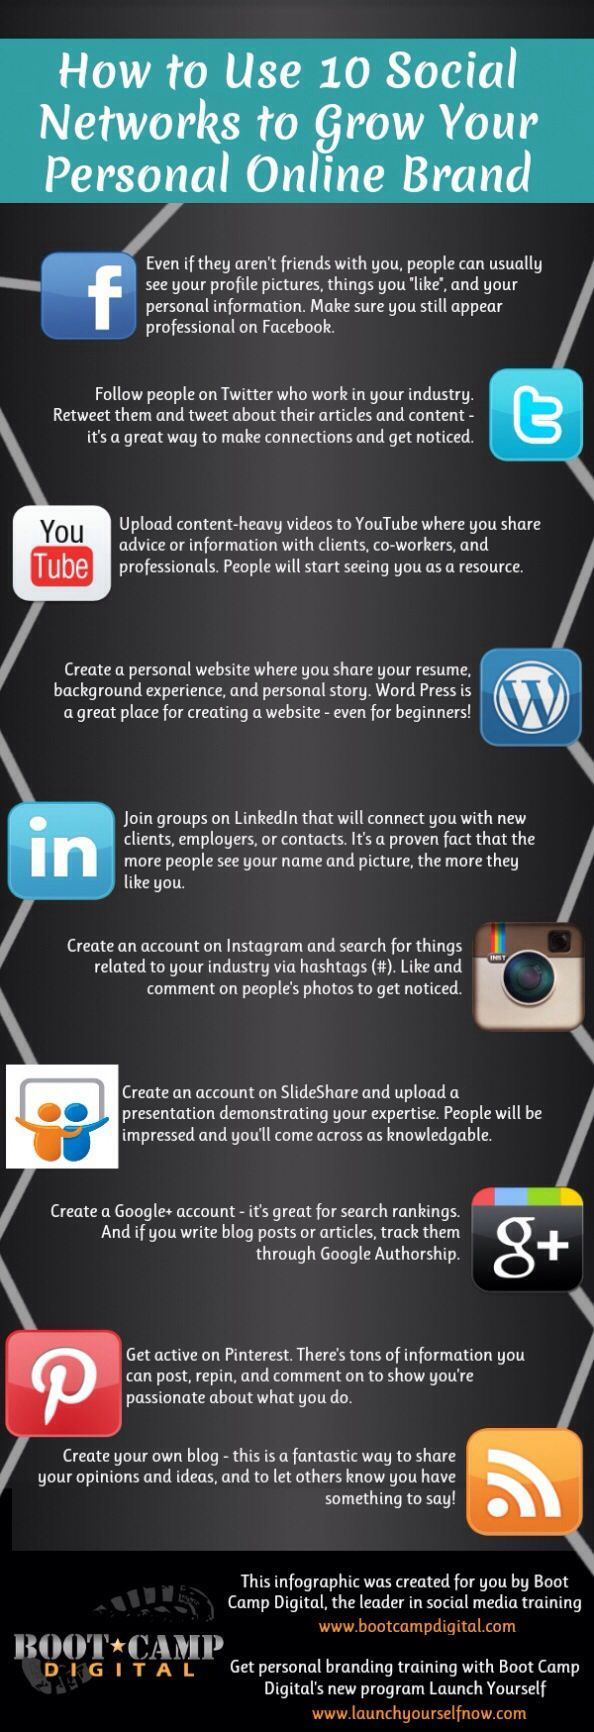 21 best InfoGraphics images on Pinterest | Inbound marketing ...